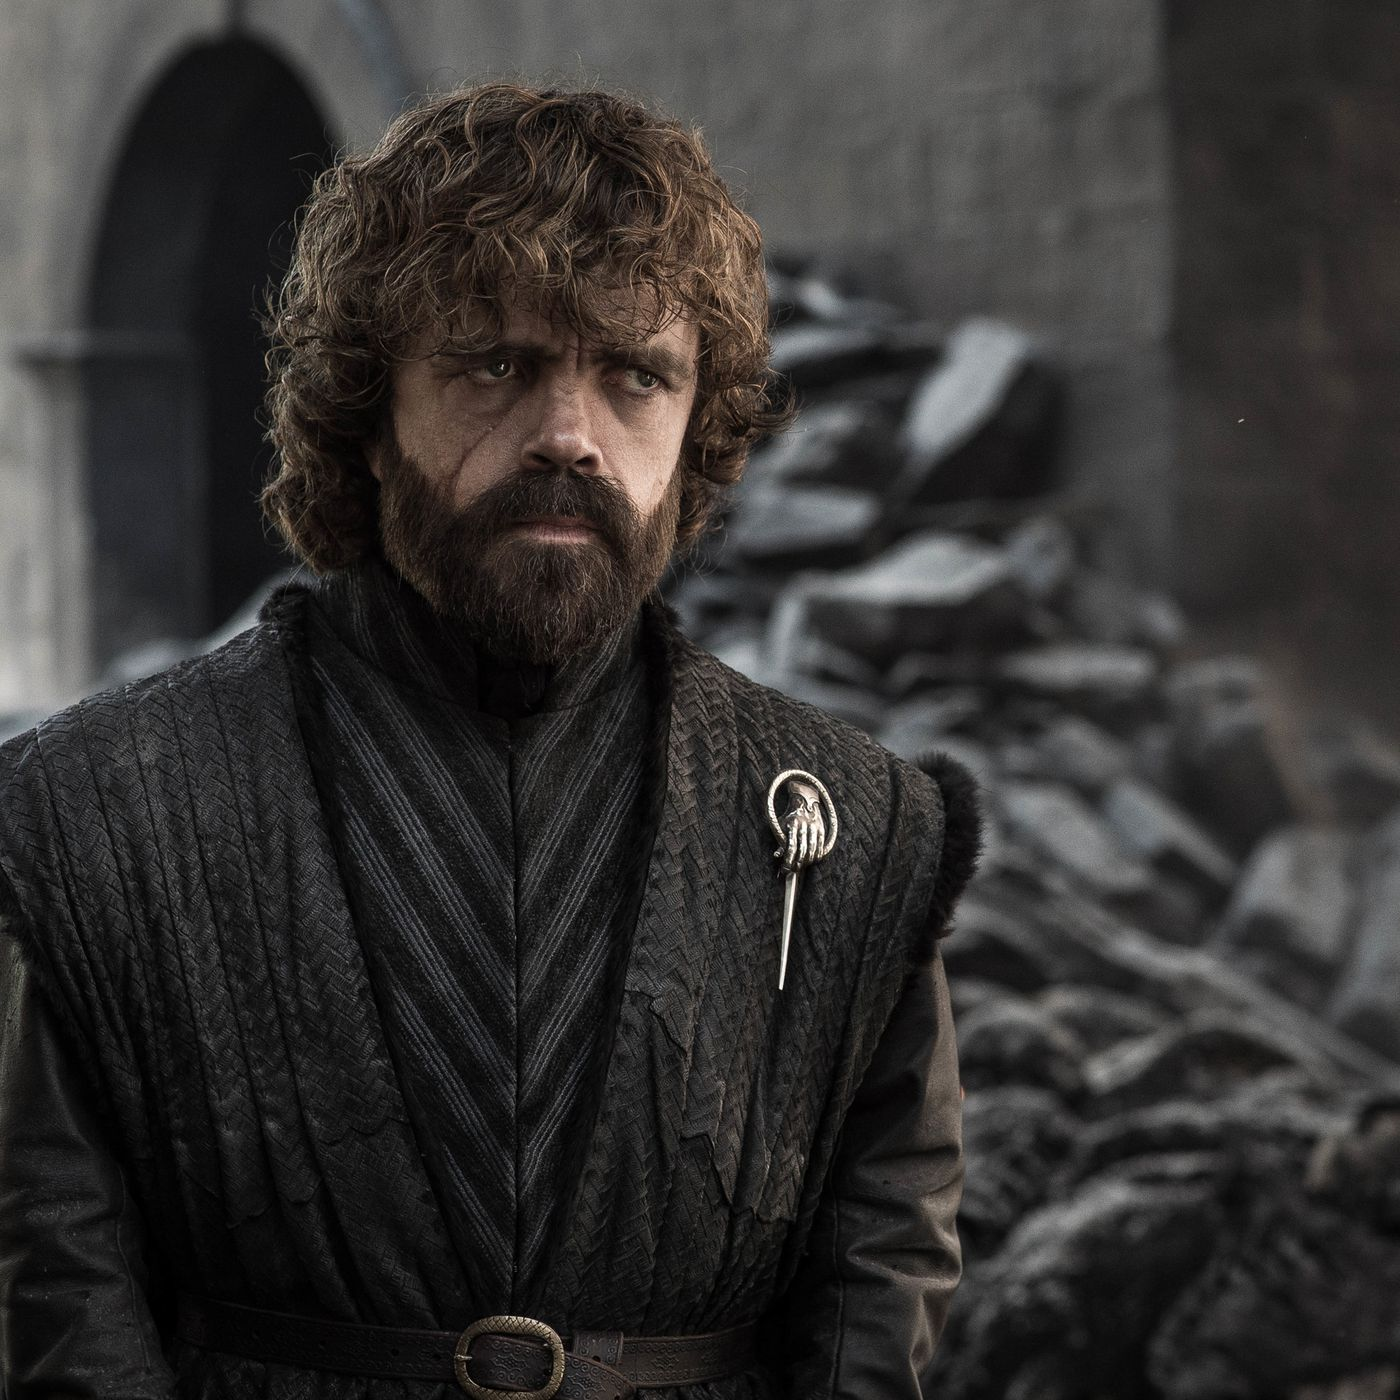 vox.com - Alex Abad-Santos, Zack Beauchamp, Aja Romano, Dylan Matthews, Matthew Yglesias, Javier Zarracina - Vox's predictions for Game of Thrones' series finale